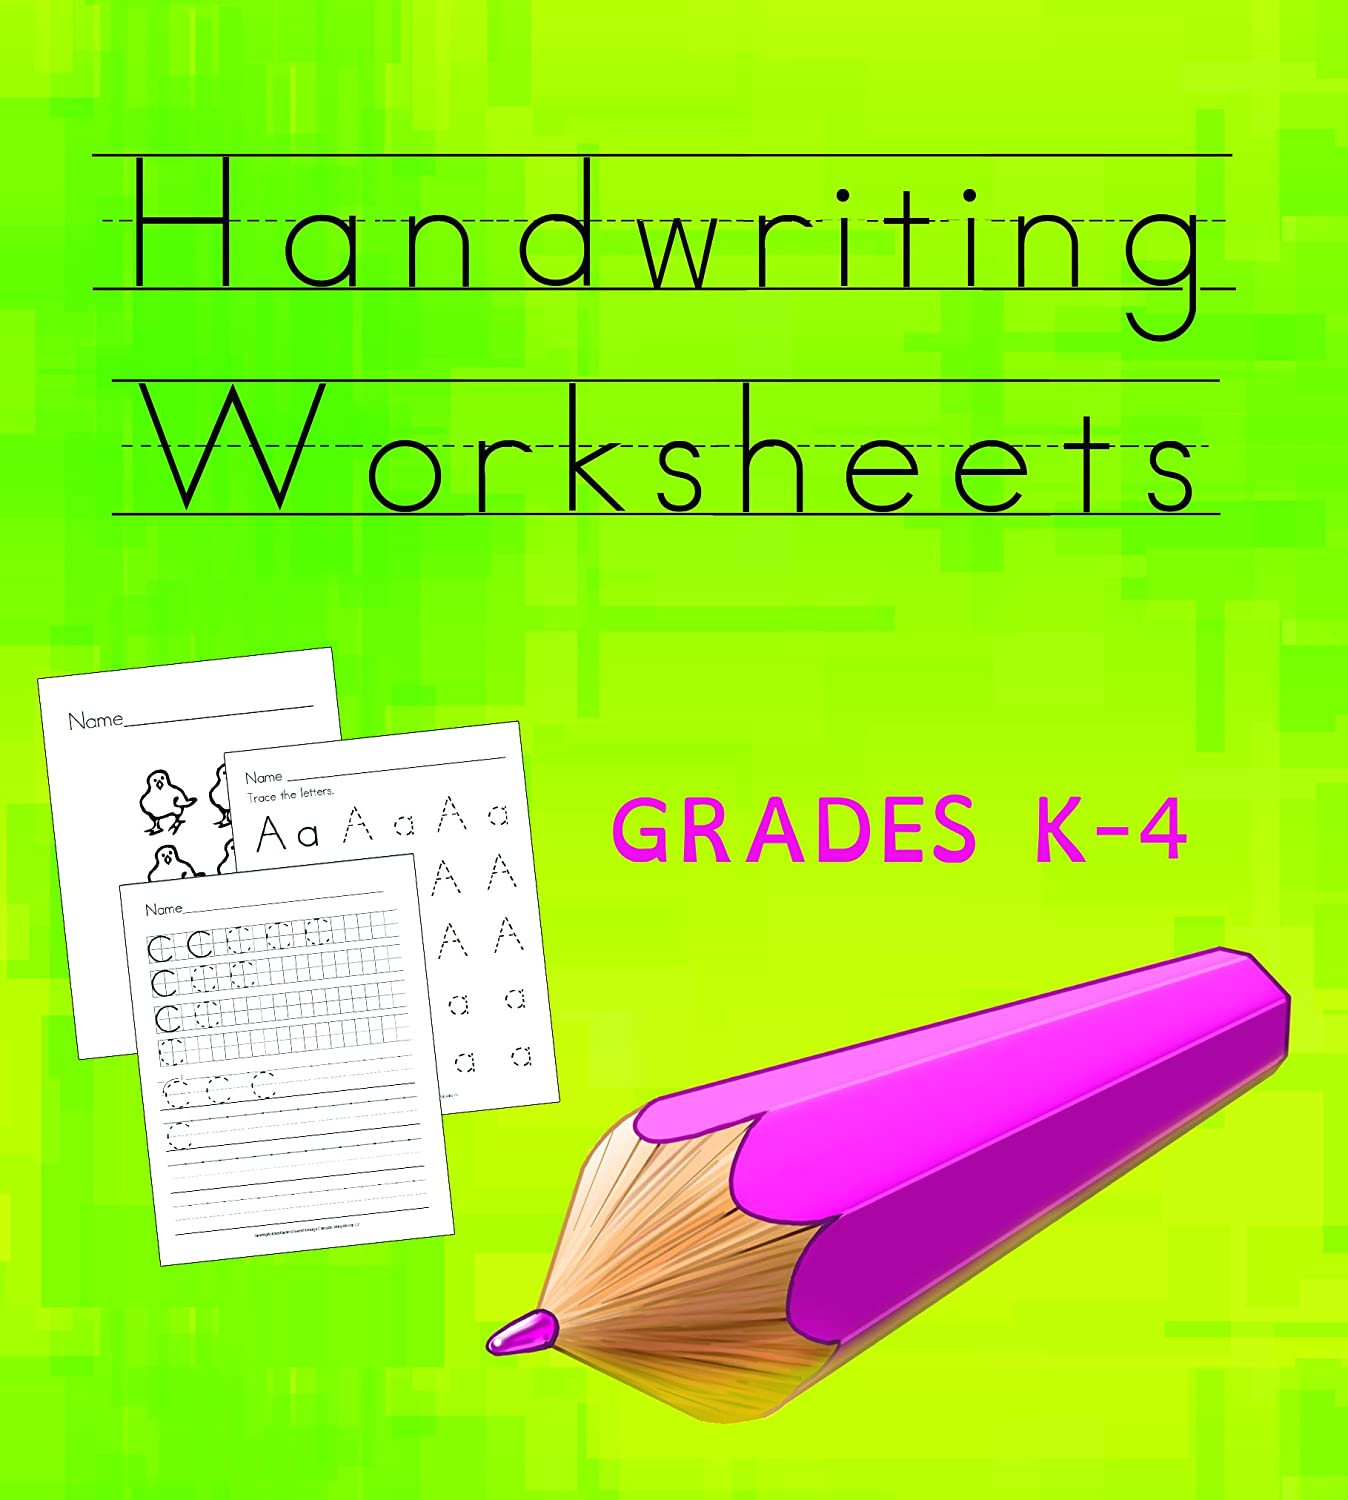 Amazon.com: Handwriting Worksheets CD | + 500 Top Quality Cursive ...